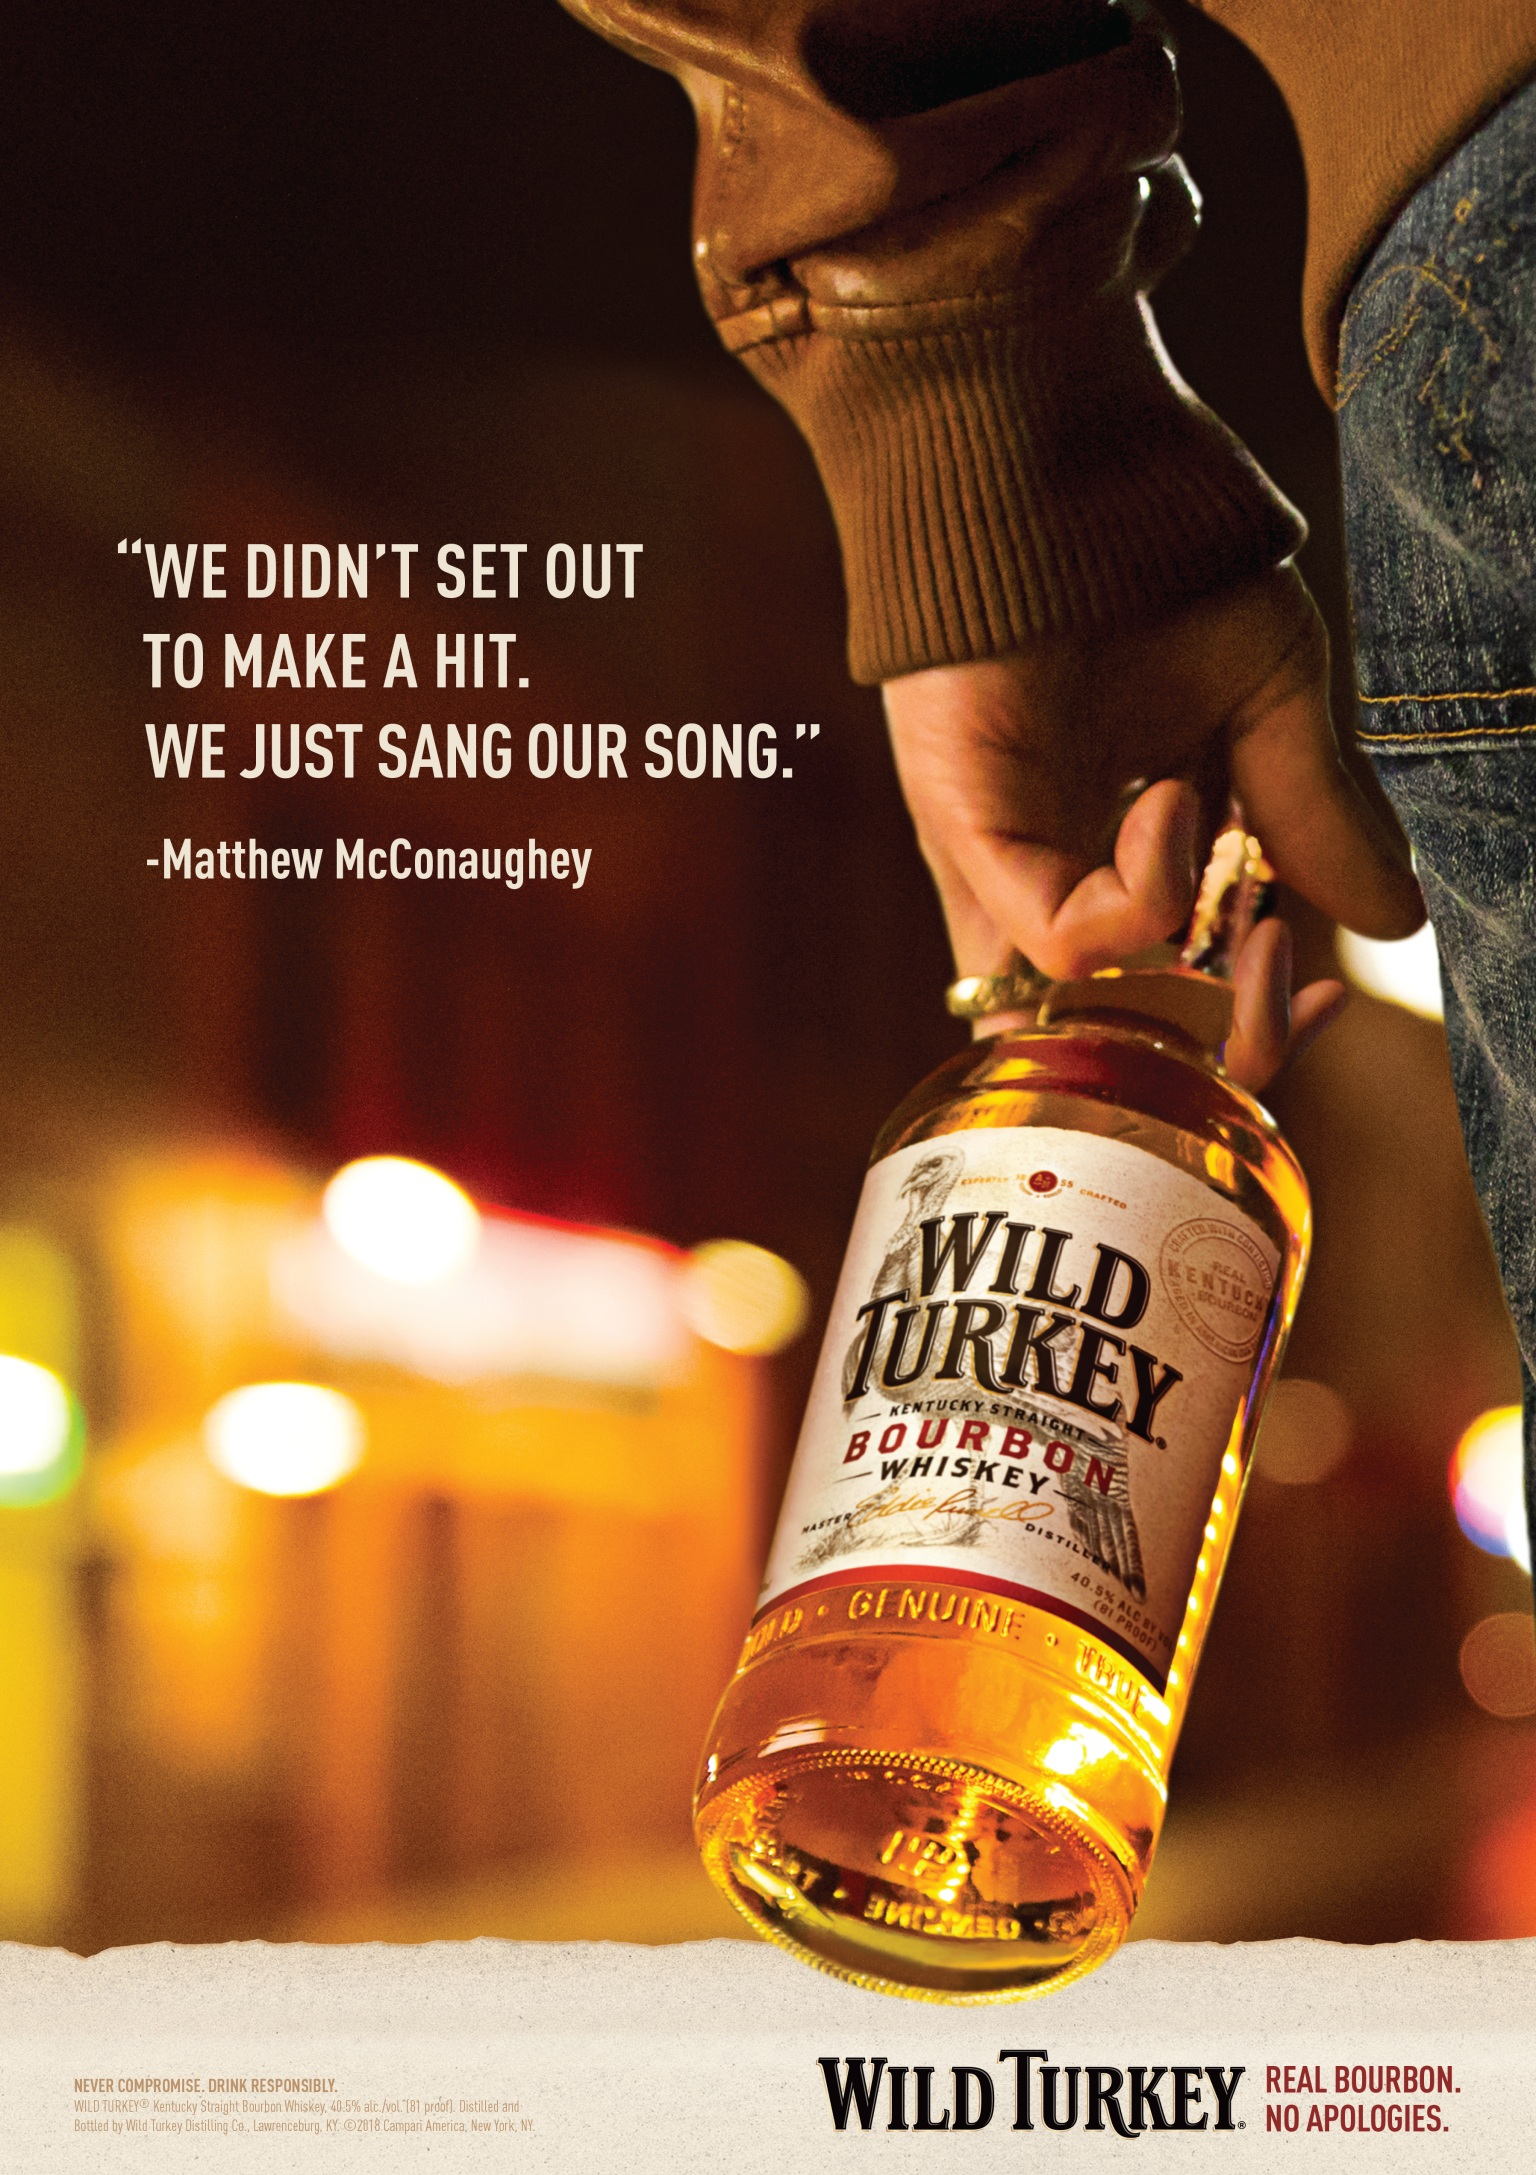 Wild Turkey - Sang Our Song